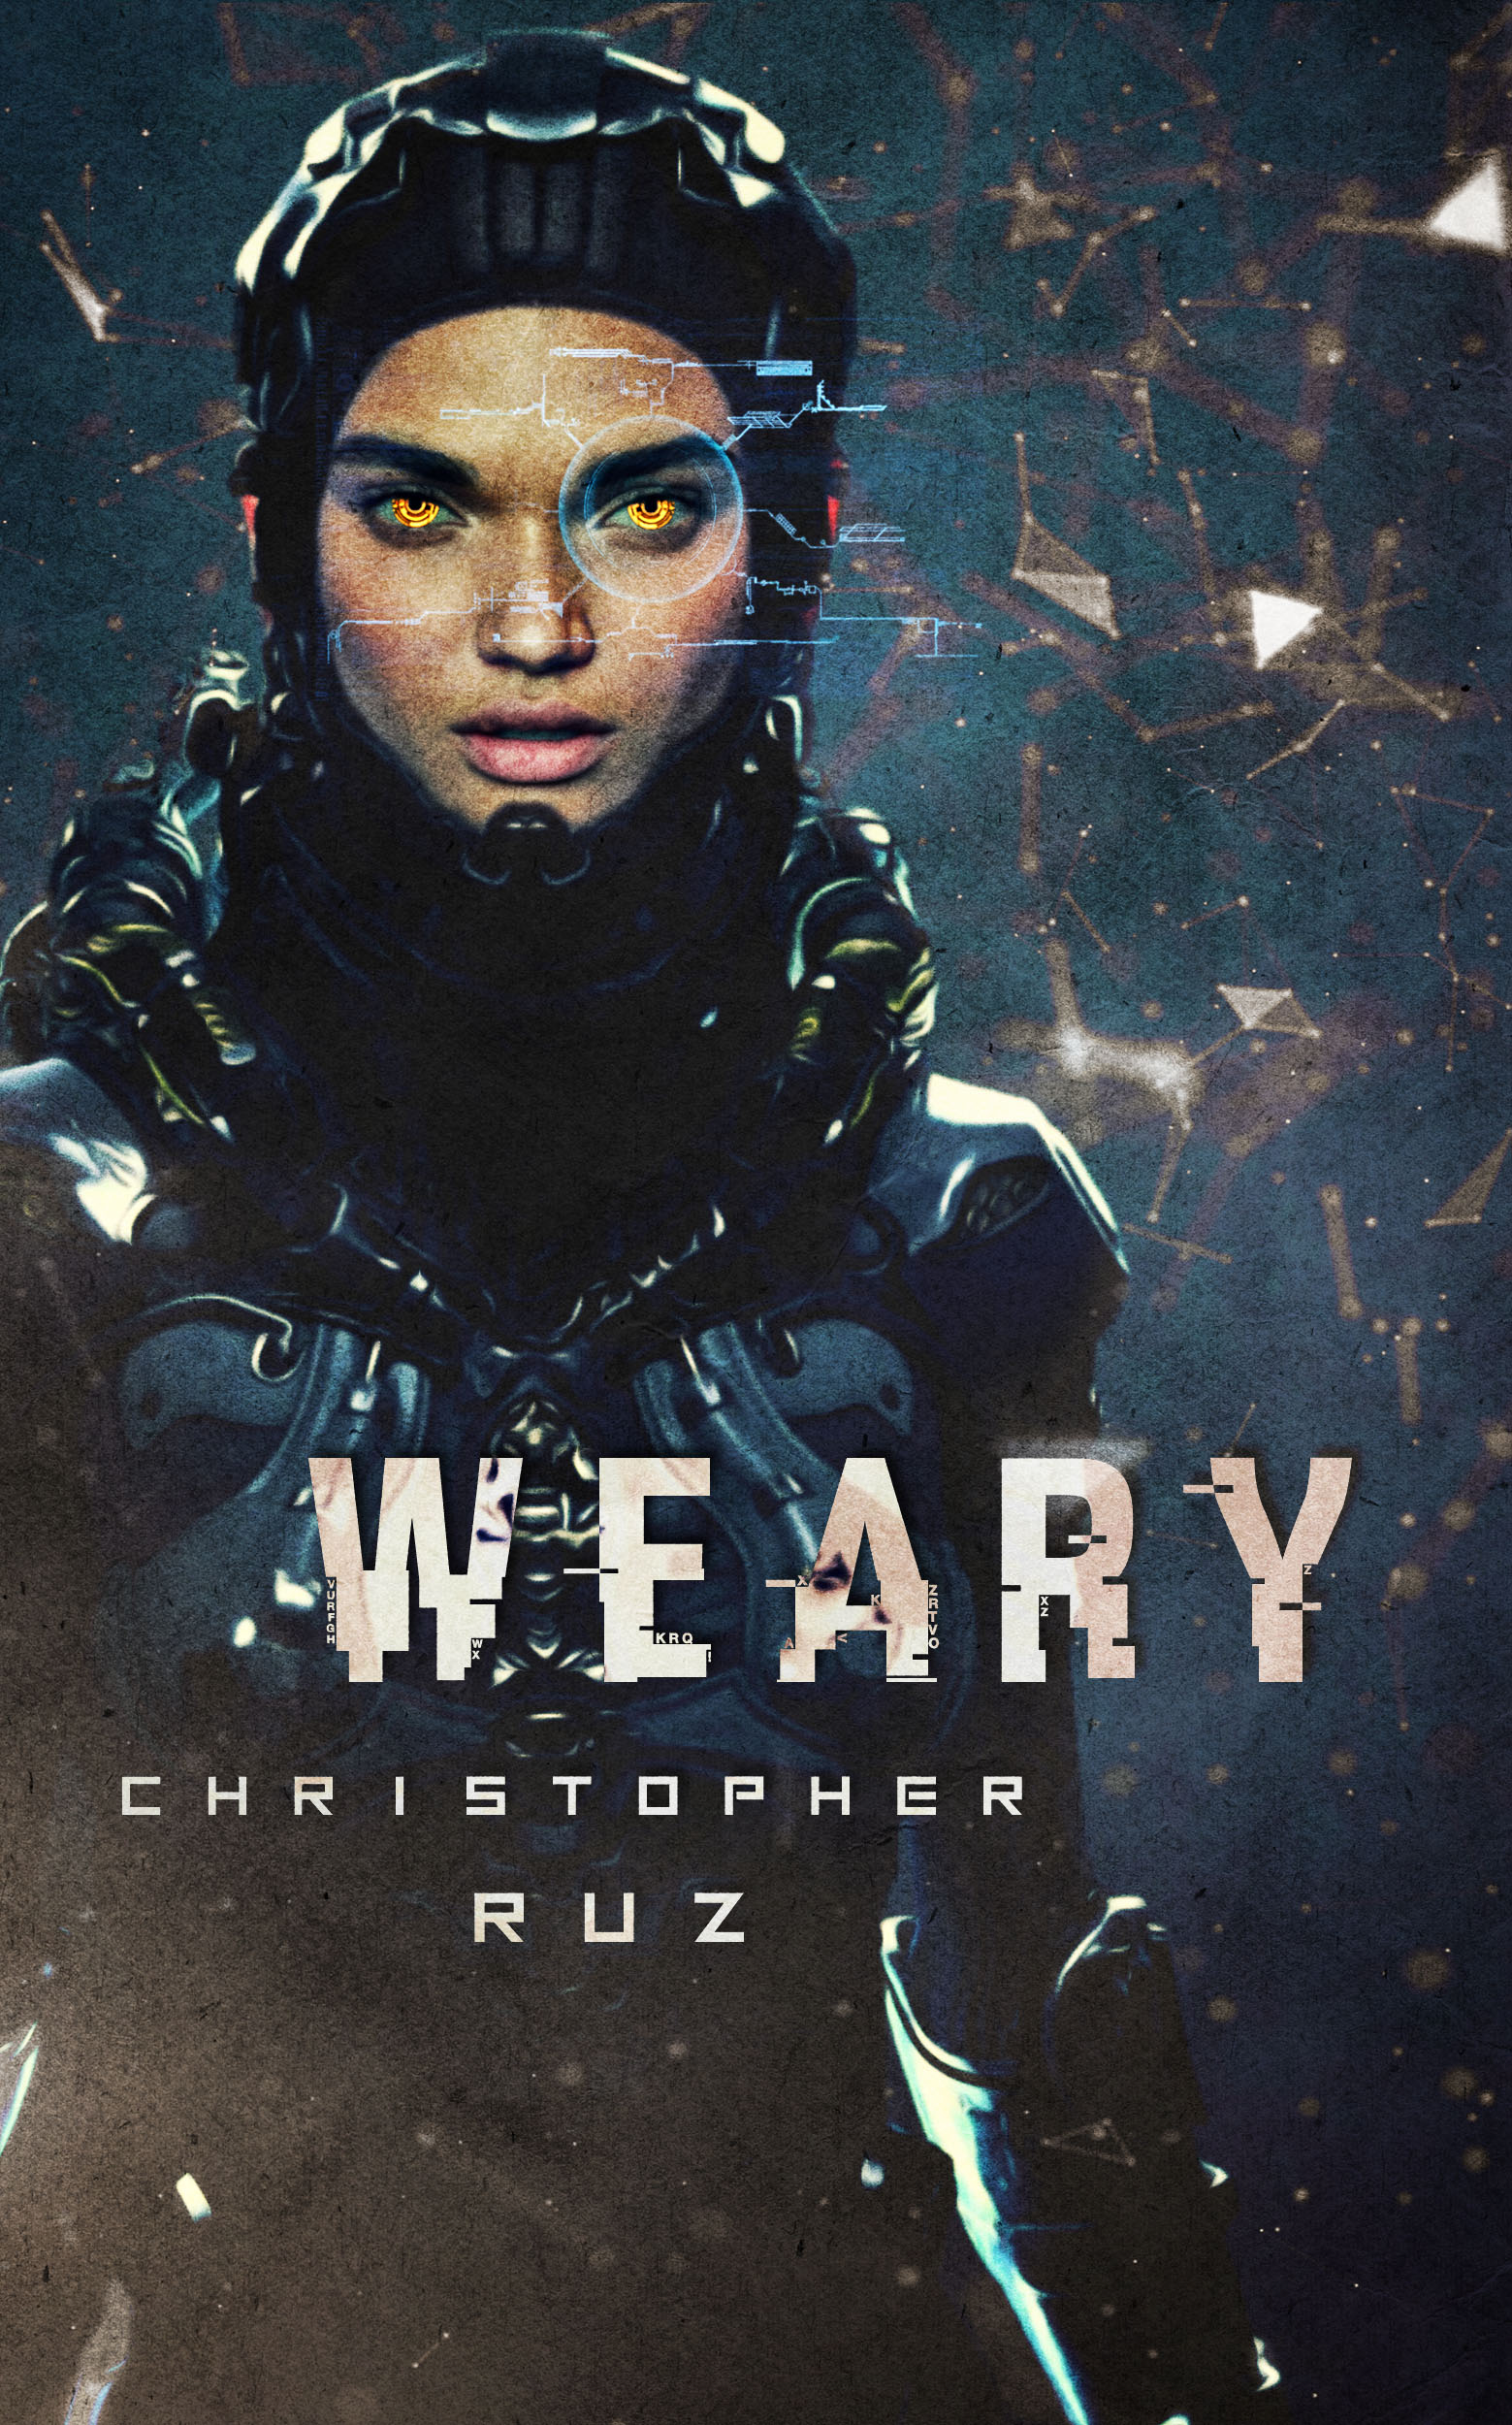 Cover art for Weary